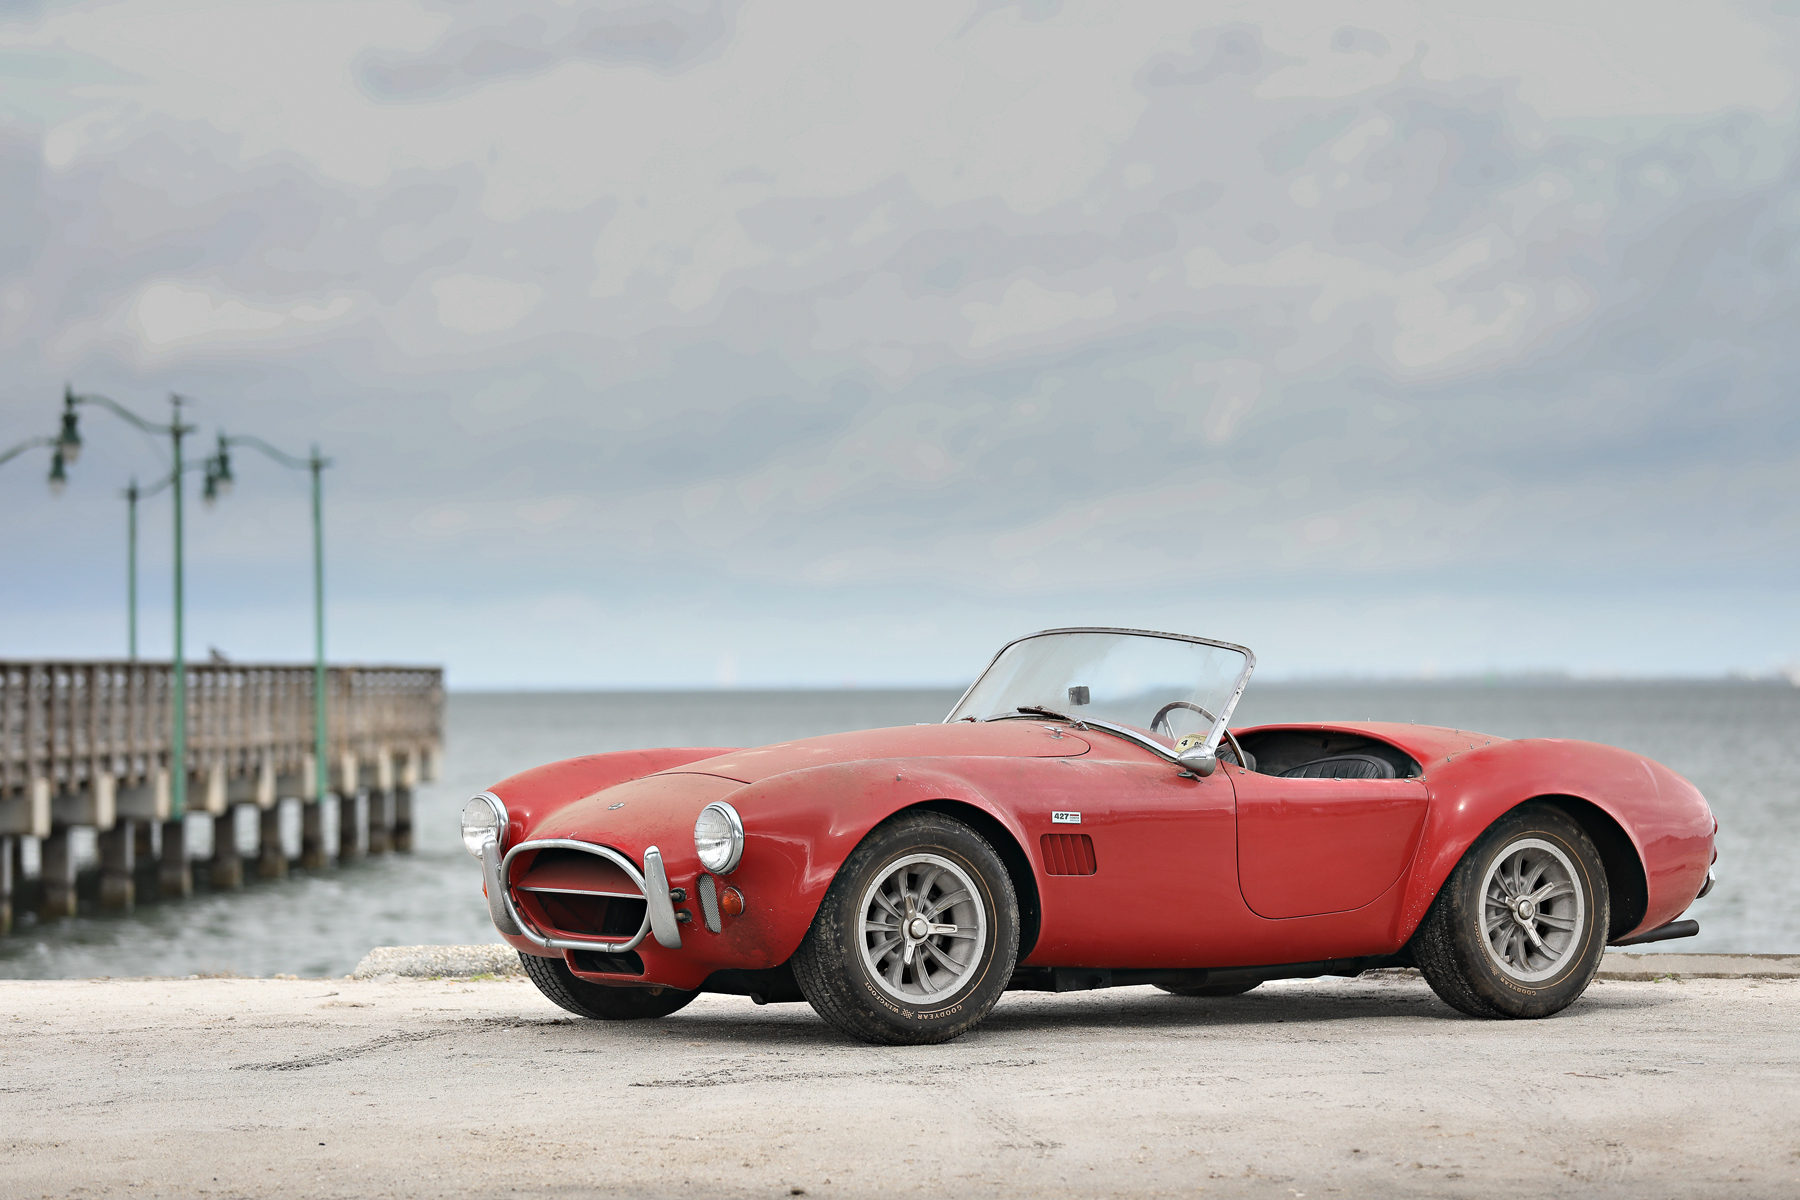 1967 Shelby 427 Cobra - gooding-barn-find-a-amelia-island-17183-2